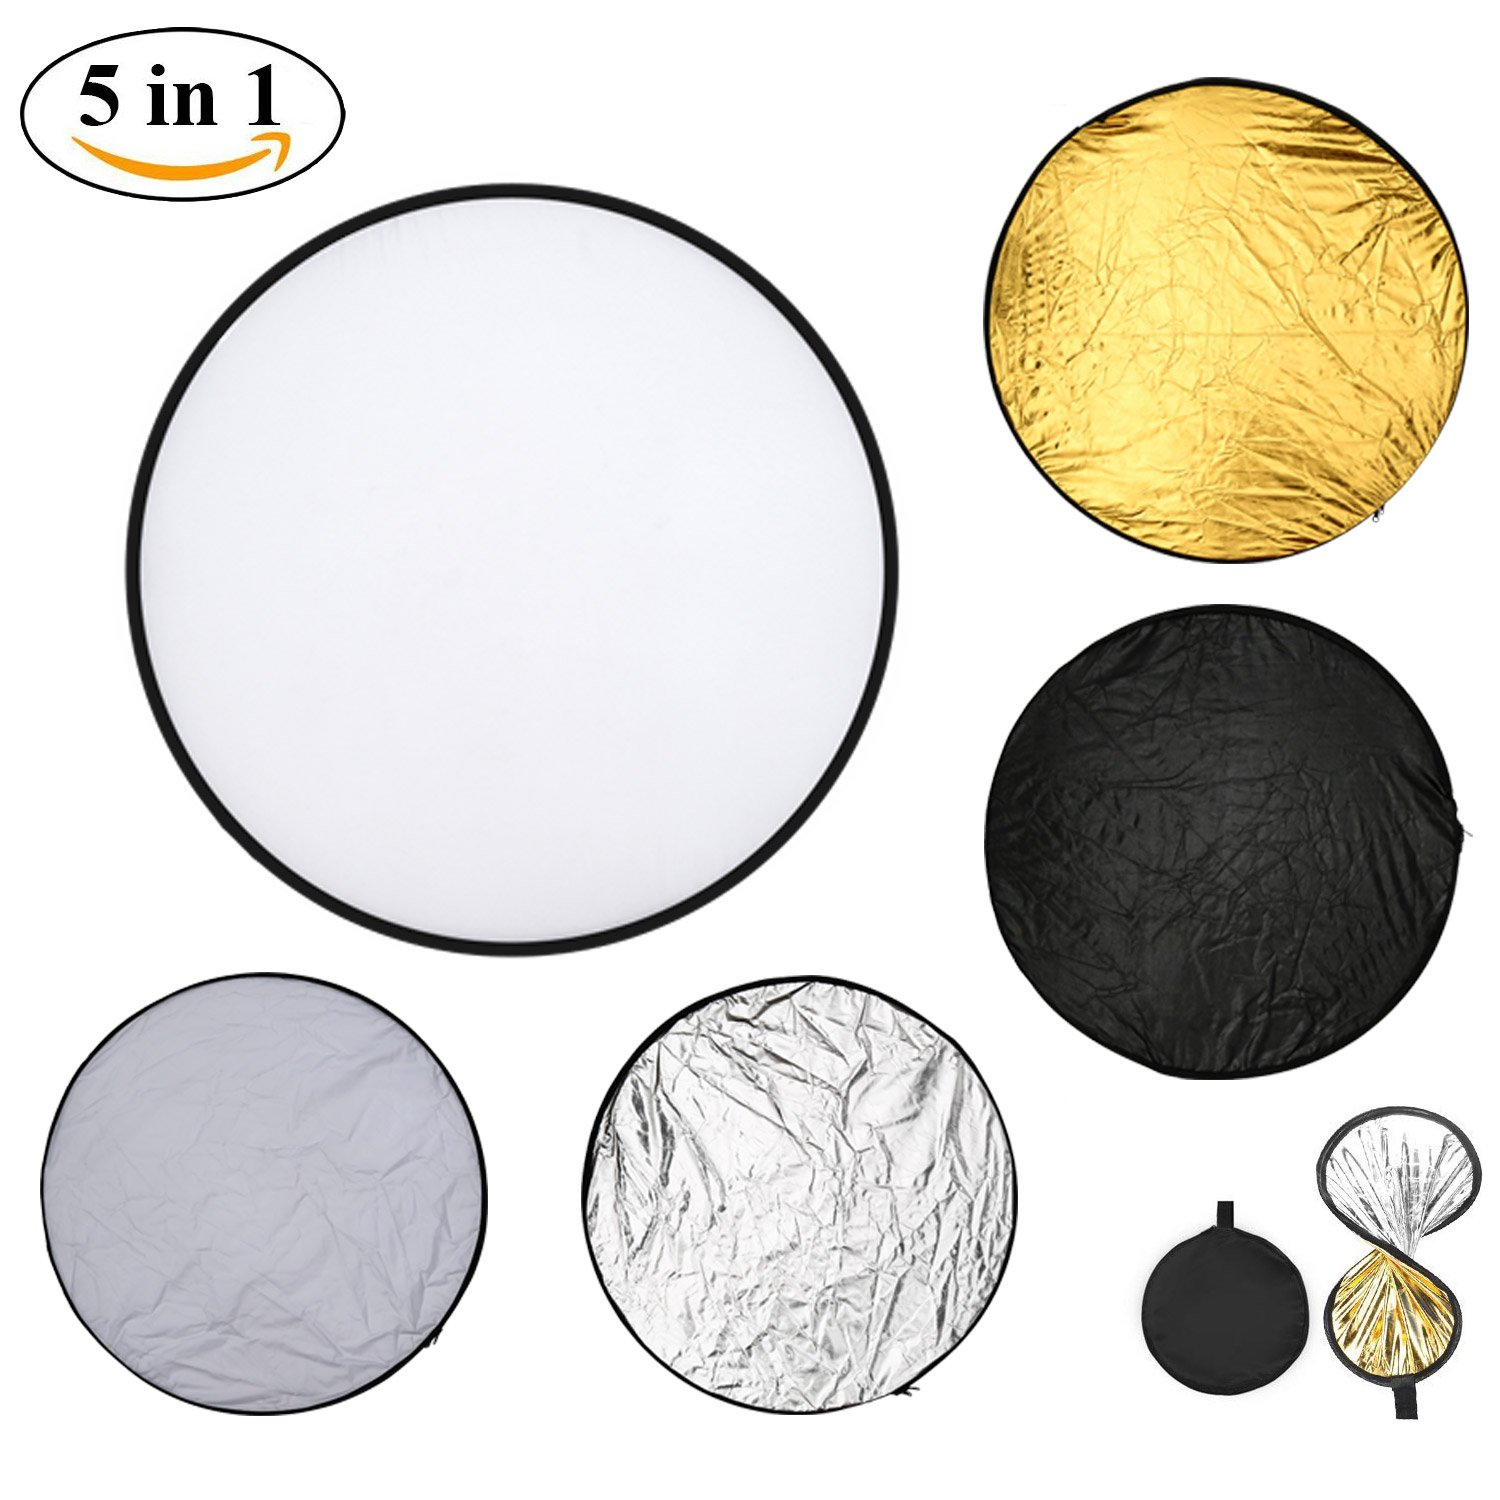 Light Reflector Camera Reflector 43inch 110cm 5-in-1 Portable Collapsible Multi-Disc for Photography Studio Outdoor Lighting with Bag - Translucent, Silver, Gold, White and Black